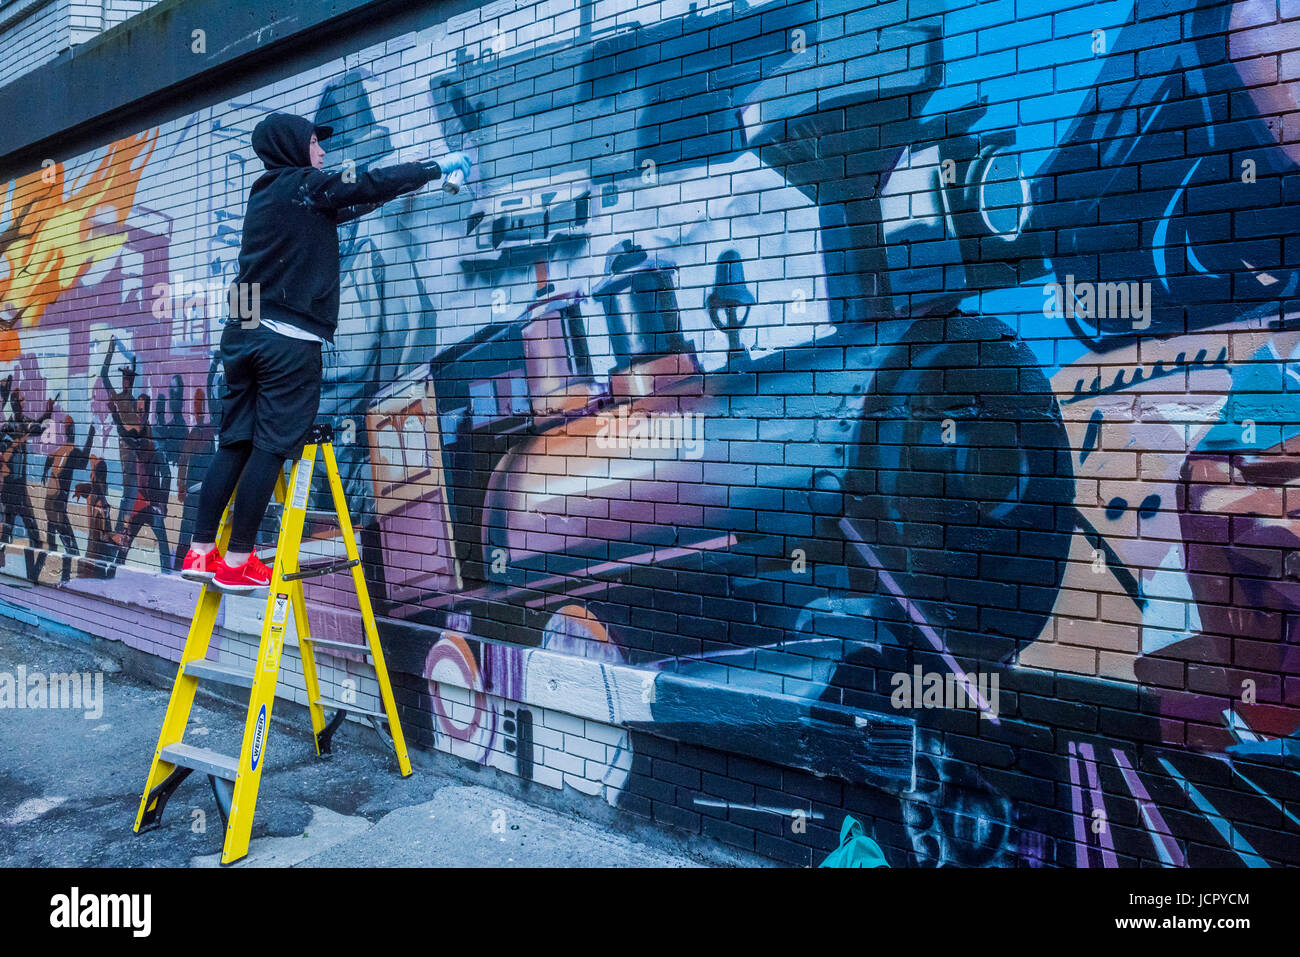 Mural painting in progress, depicting 100 years of Vancouver history, DTES, Gastown, Vancouver, British Columbia, Stock Photo